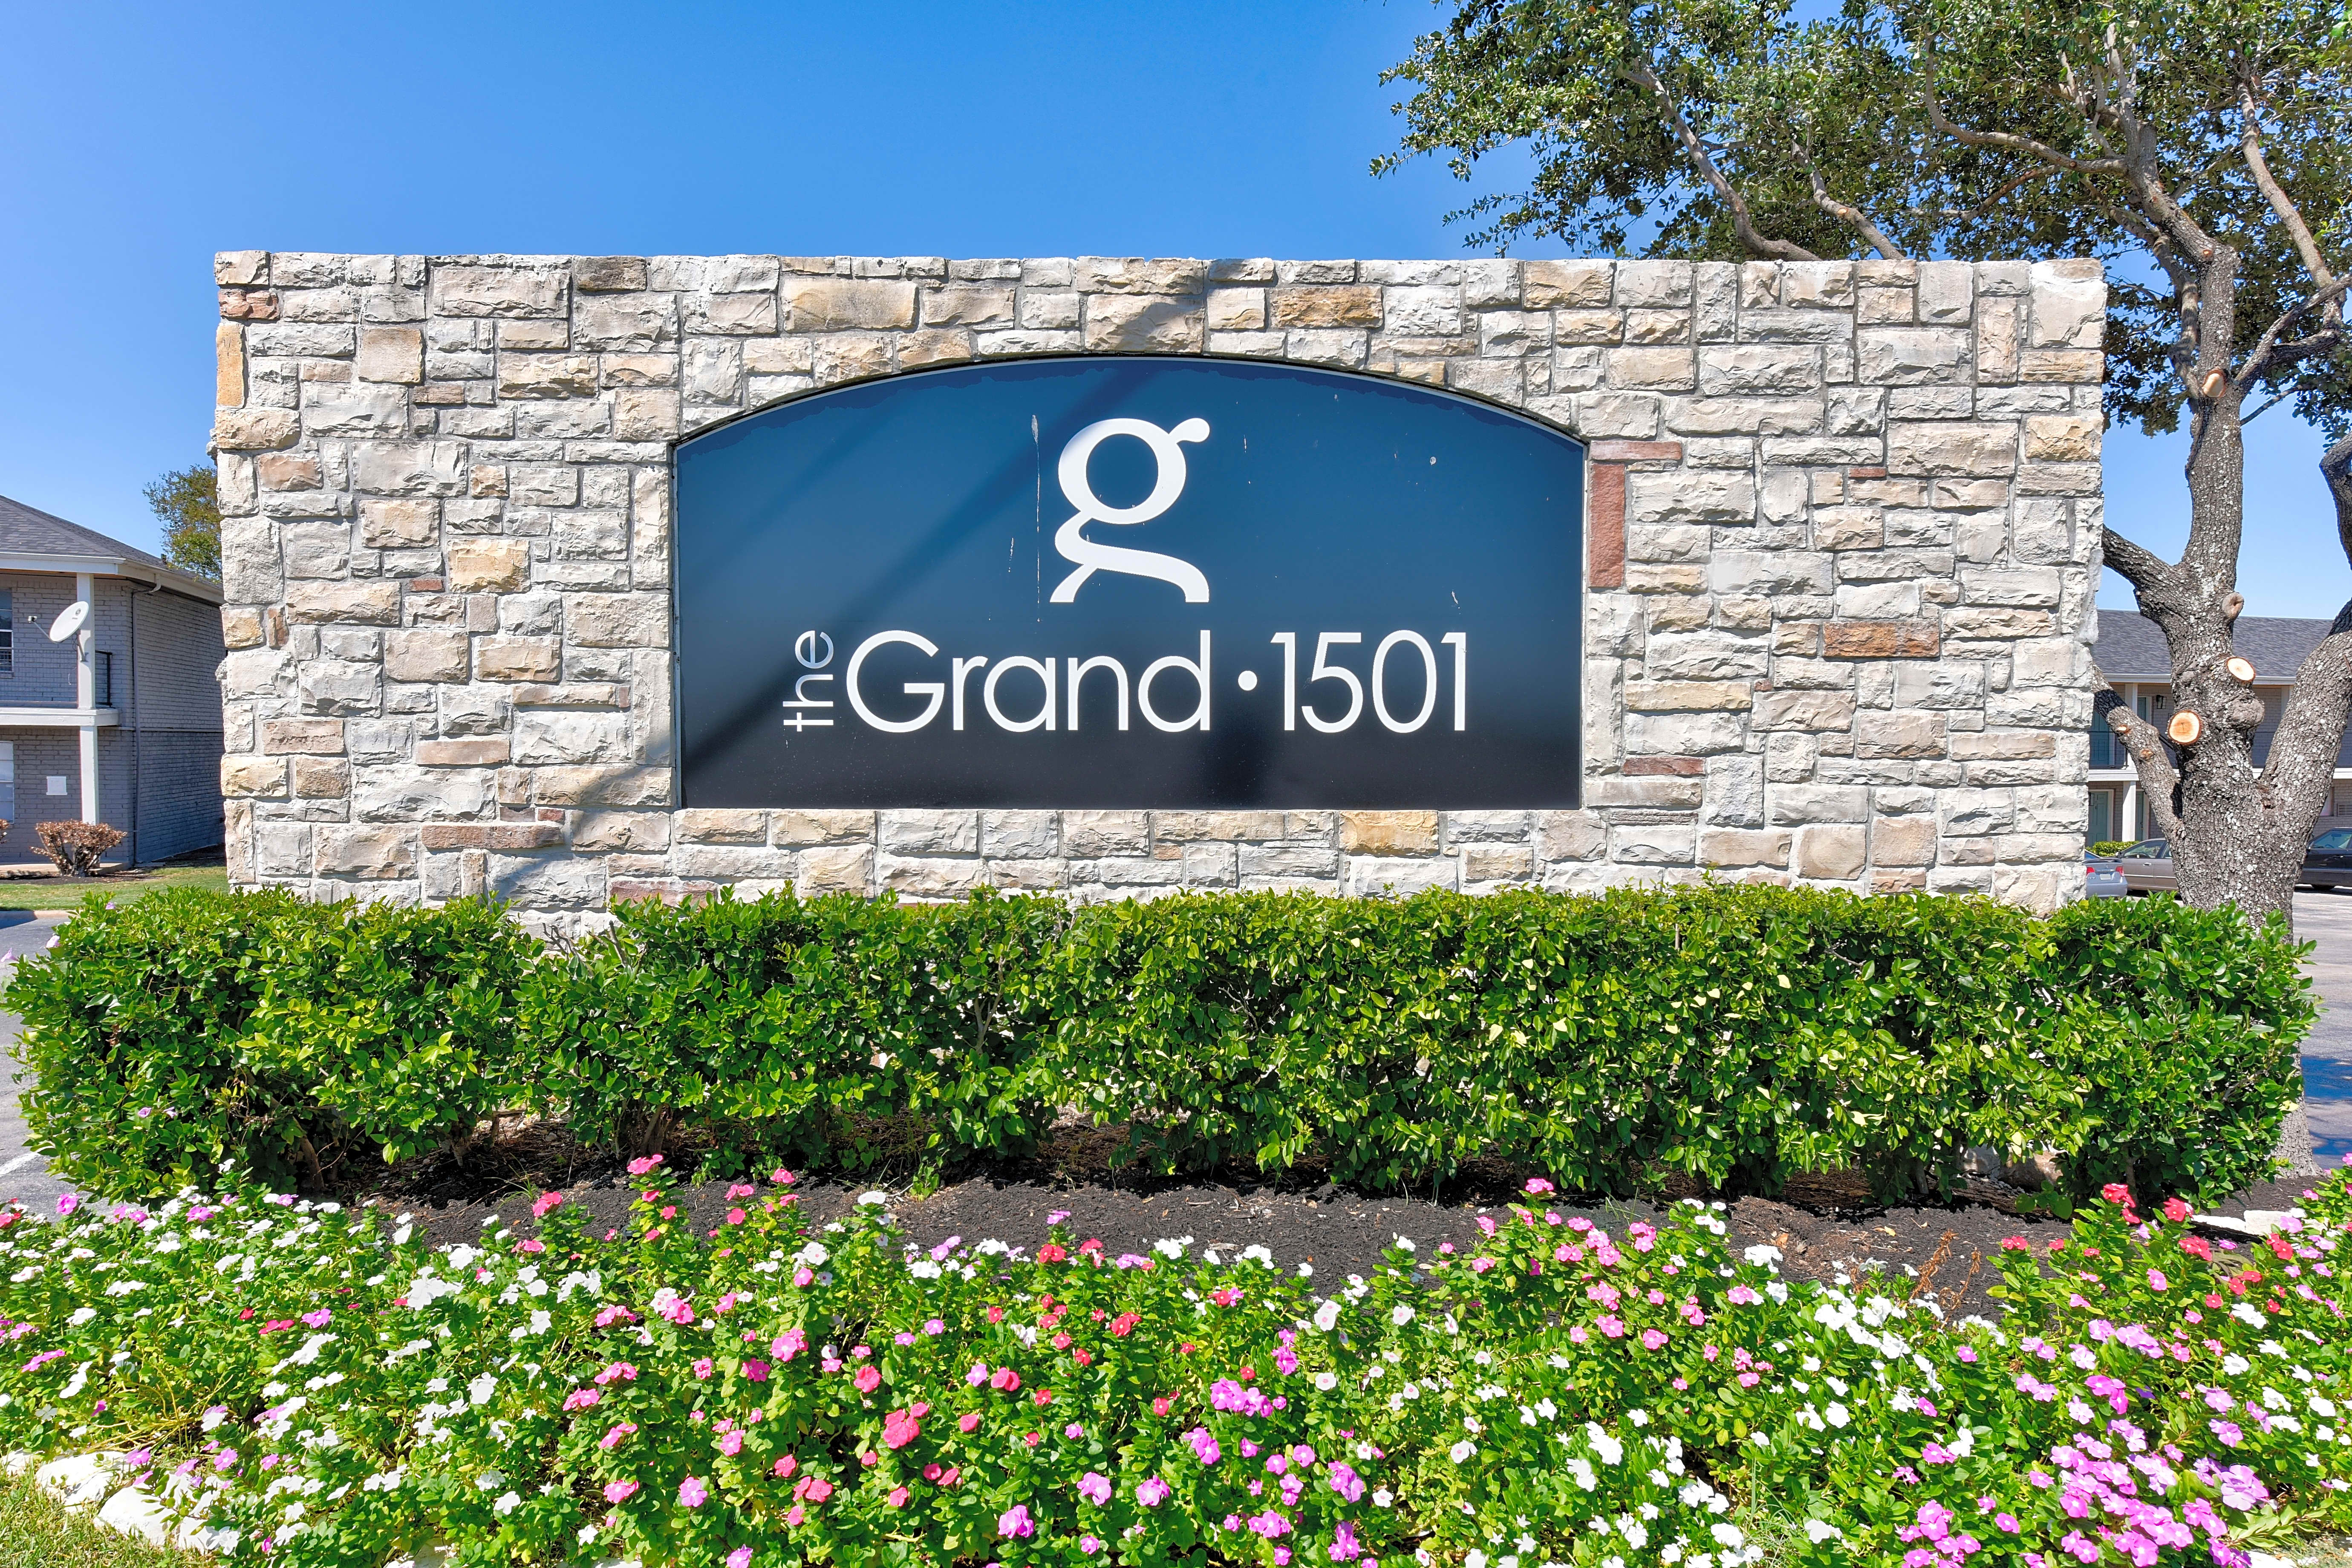 Apartments Near Texas A&M The Grand 1501 Apartments for Texas A&M University Students in College Station, TX